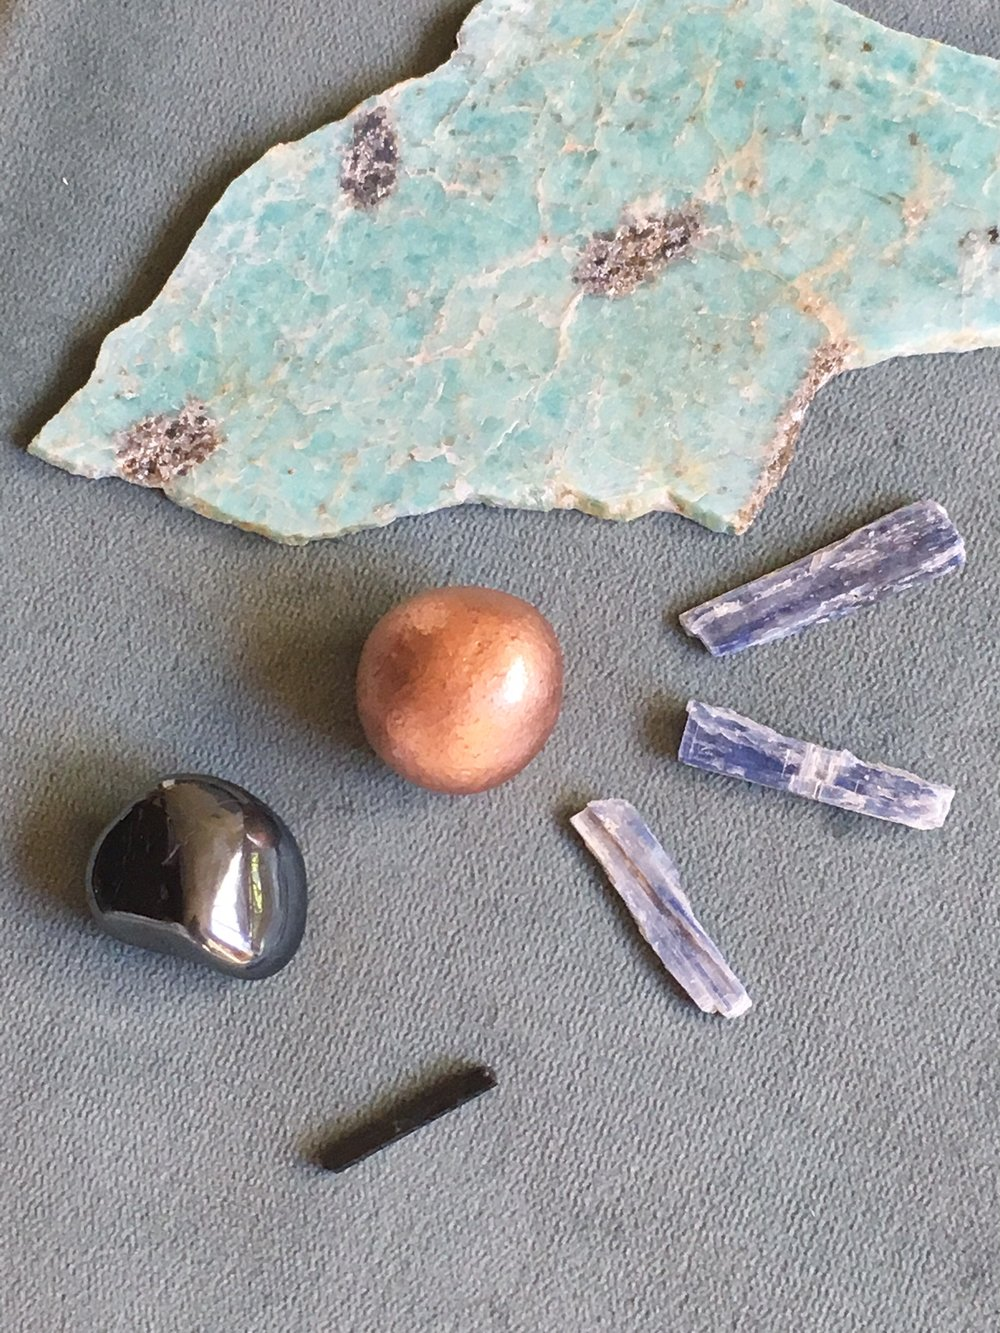 Some of the minerals I used this week to support you - clockwise: amazonite, kyanite, aegirine, hematite & copper.